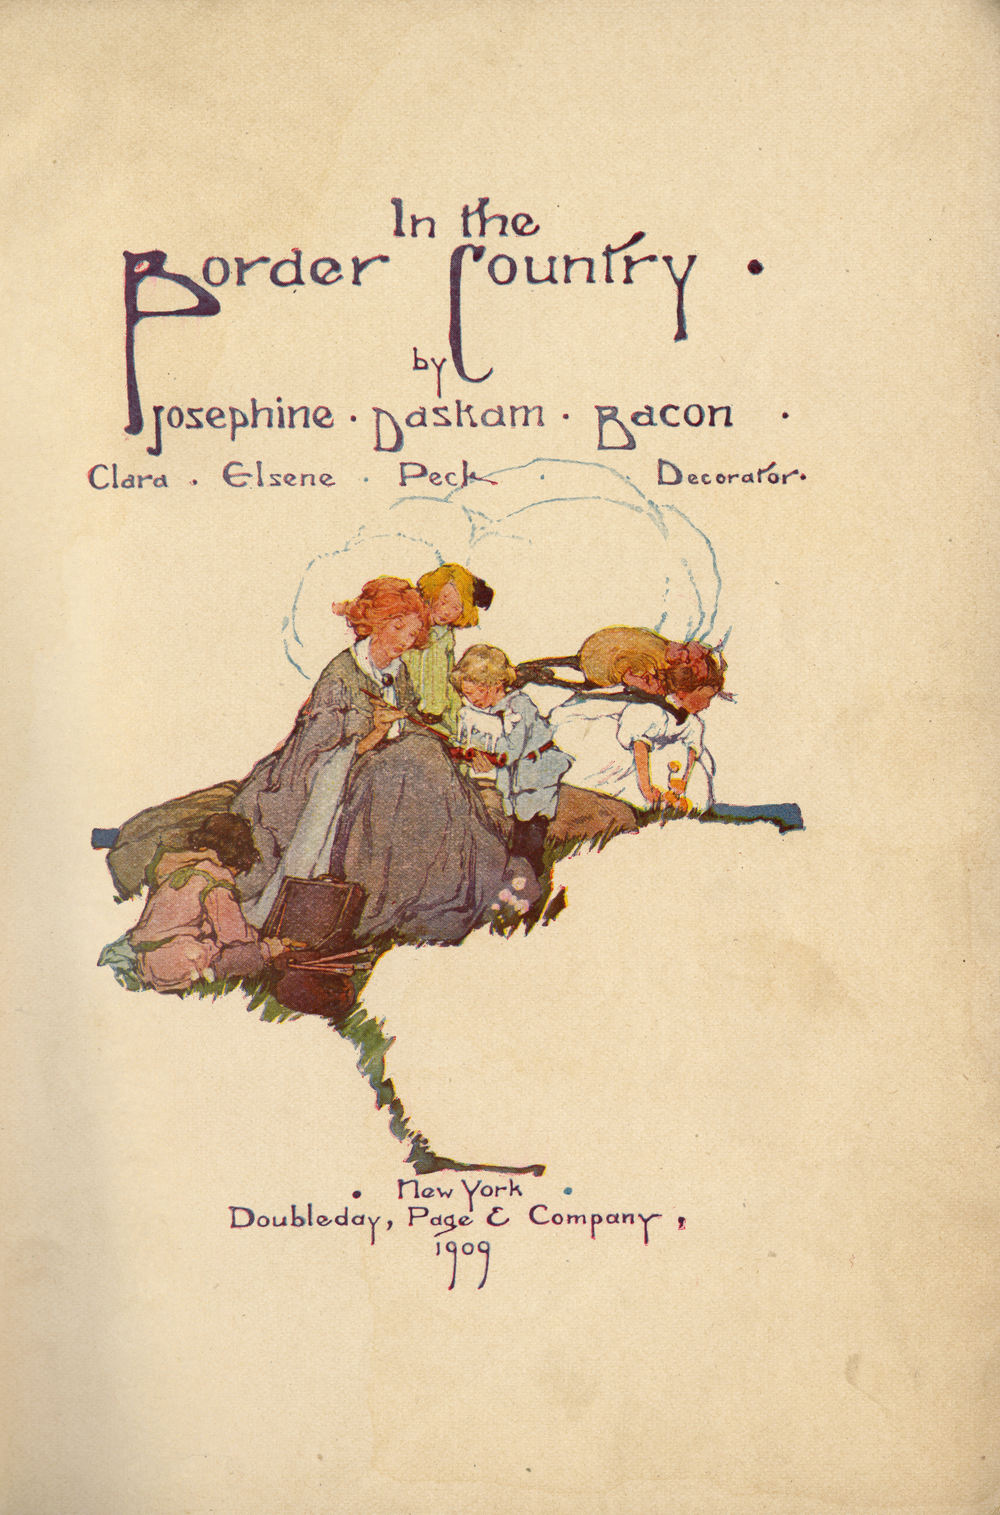 Clara Elsene Peck, In the Border Country. Title Page. Written by Josephine Daskam Bacon. 1909.